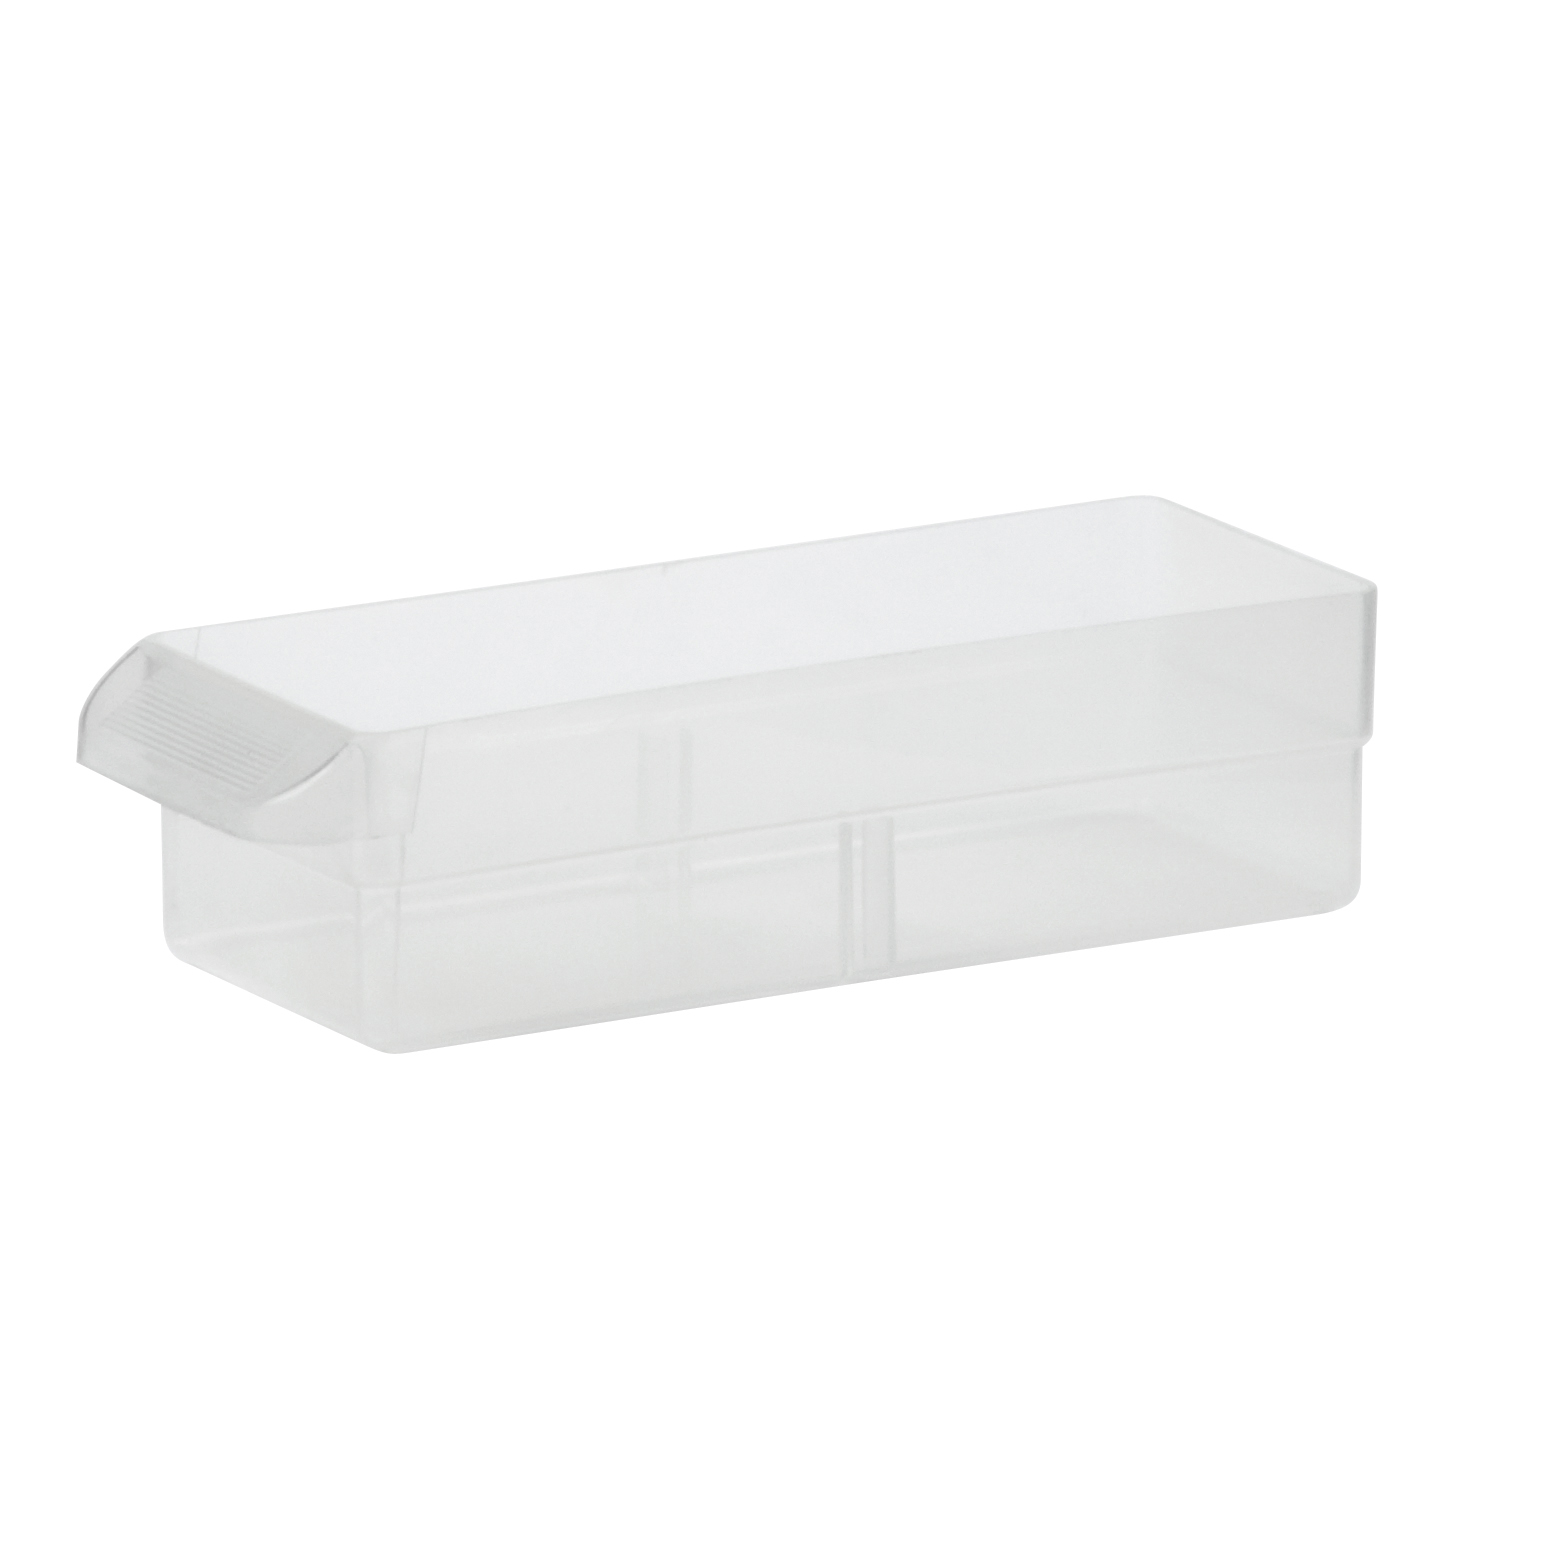 Item DISCONTINUED by Manufacturer.  10-Series Cabinet Small Drawer 6 x 2-1/4 x 1-5/8.  This item sold in carton quantities of 24.